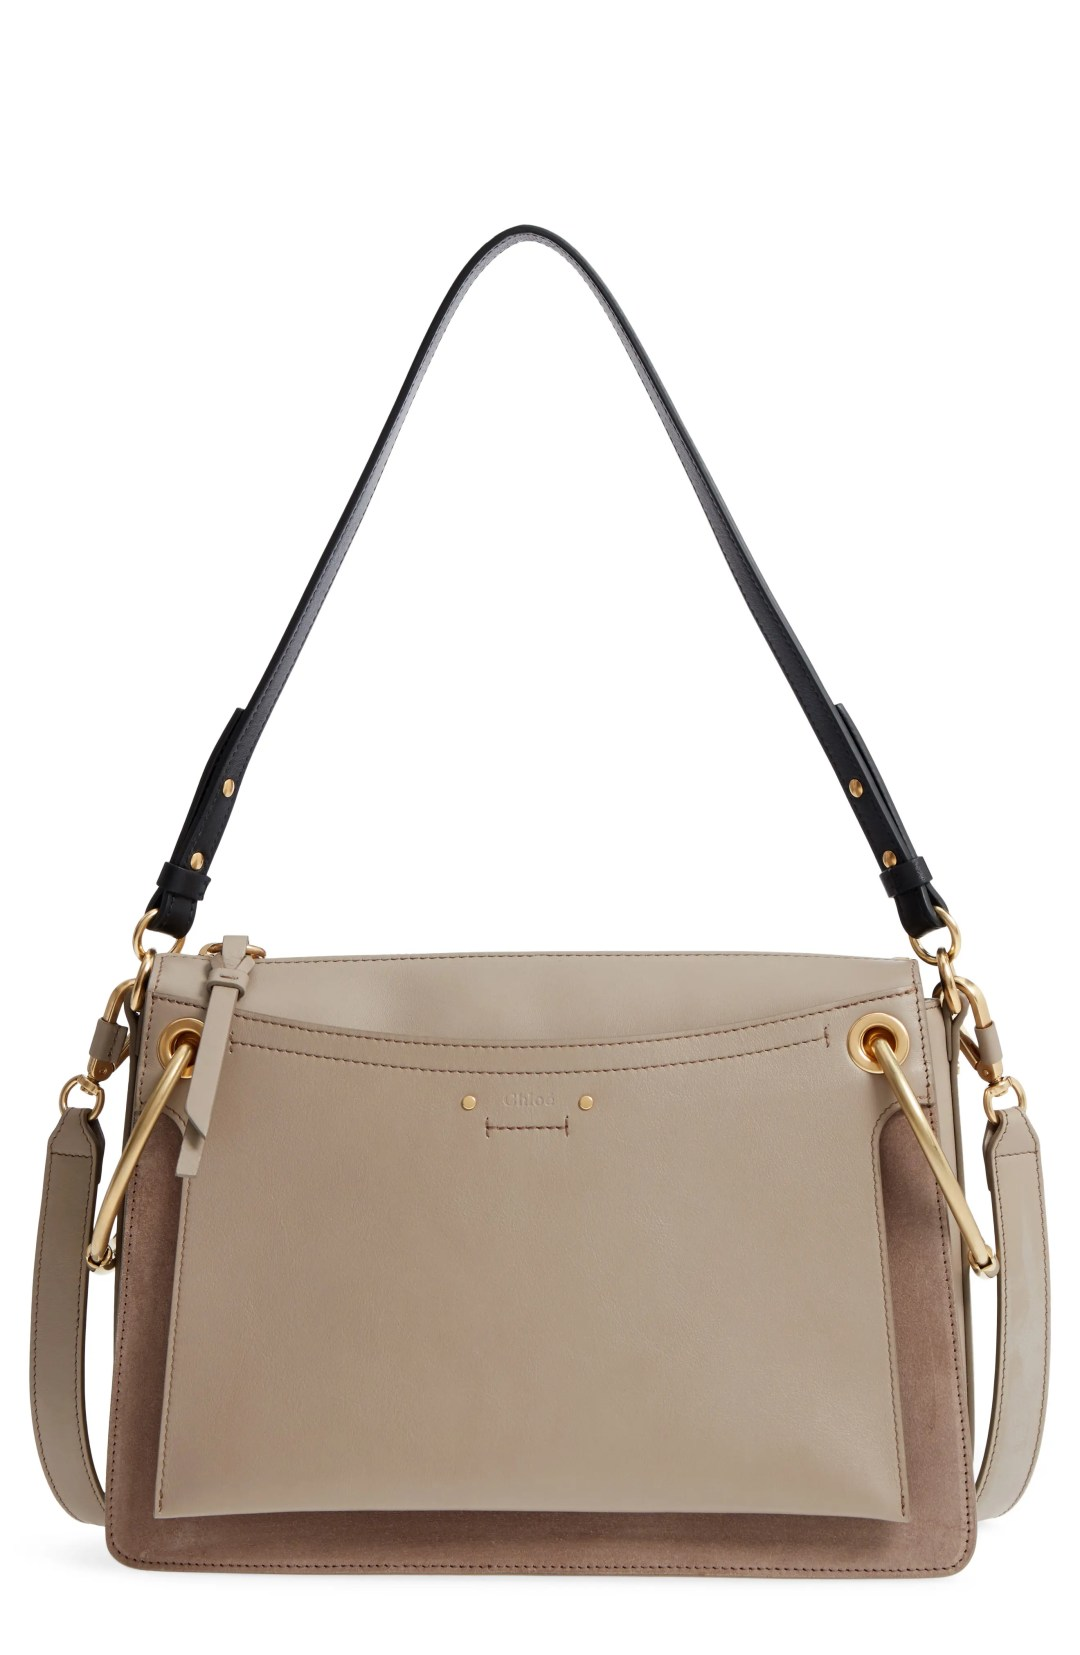 70ee7fca88a Chloé Small Roy Leather Shoulder Bag